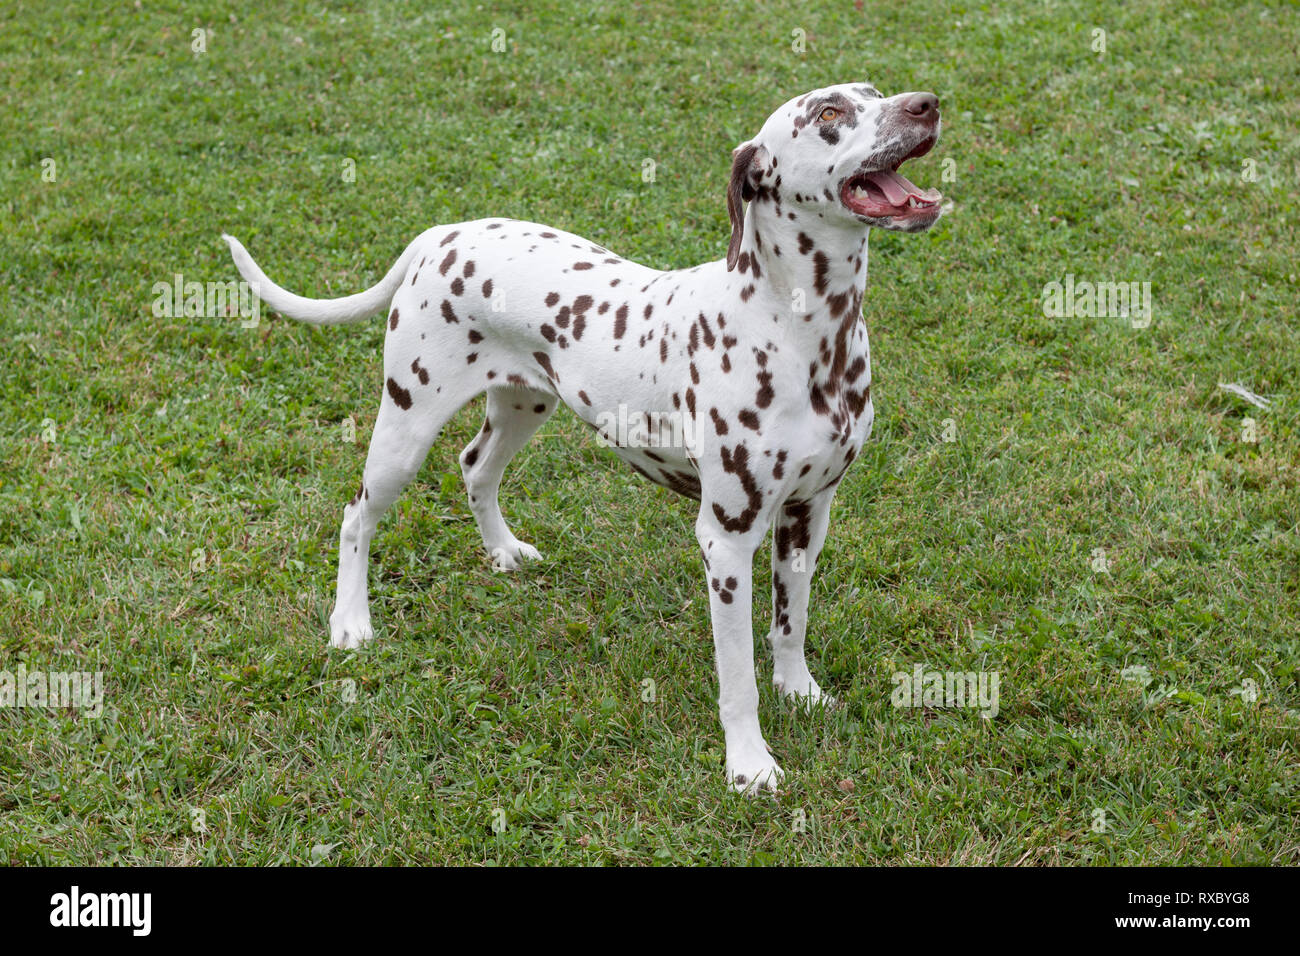 Cute dalmatian puppy is standing on a green meadow. Pet animals. Purebred dog. - Stock Image